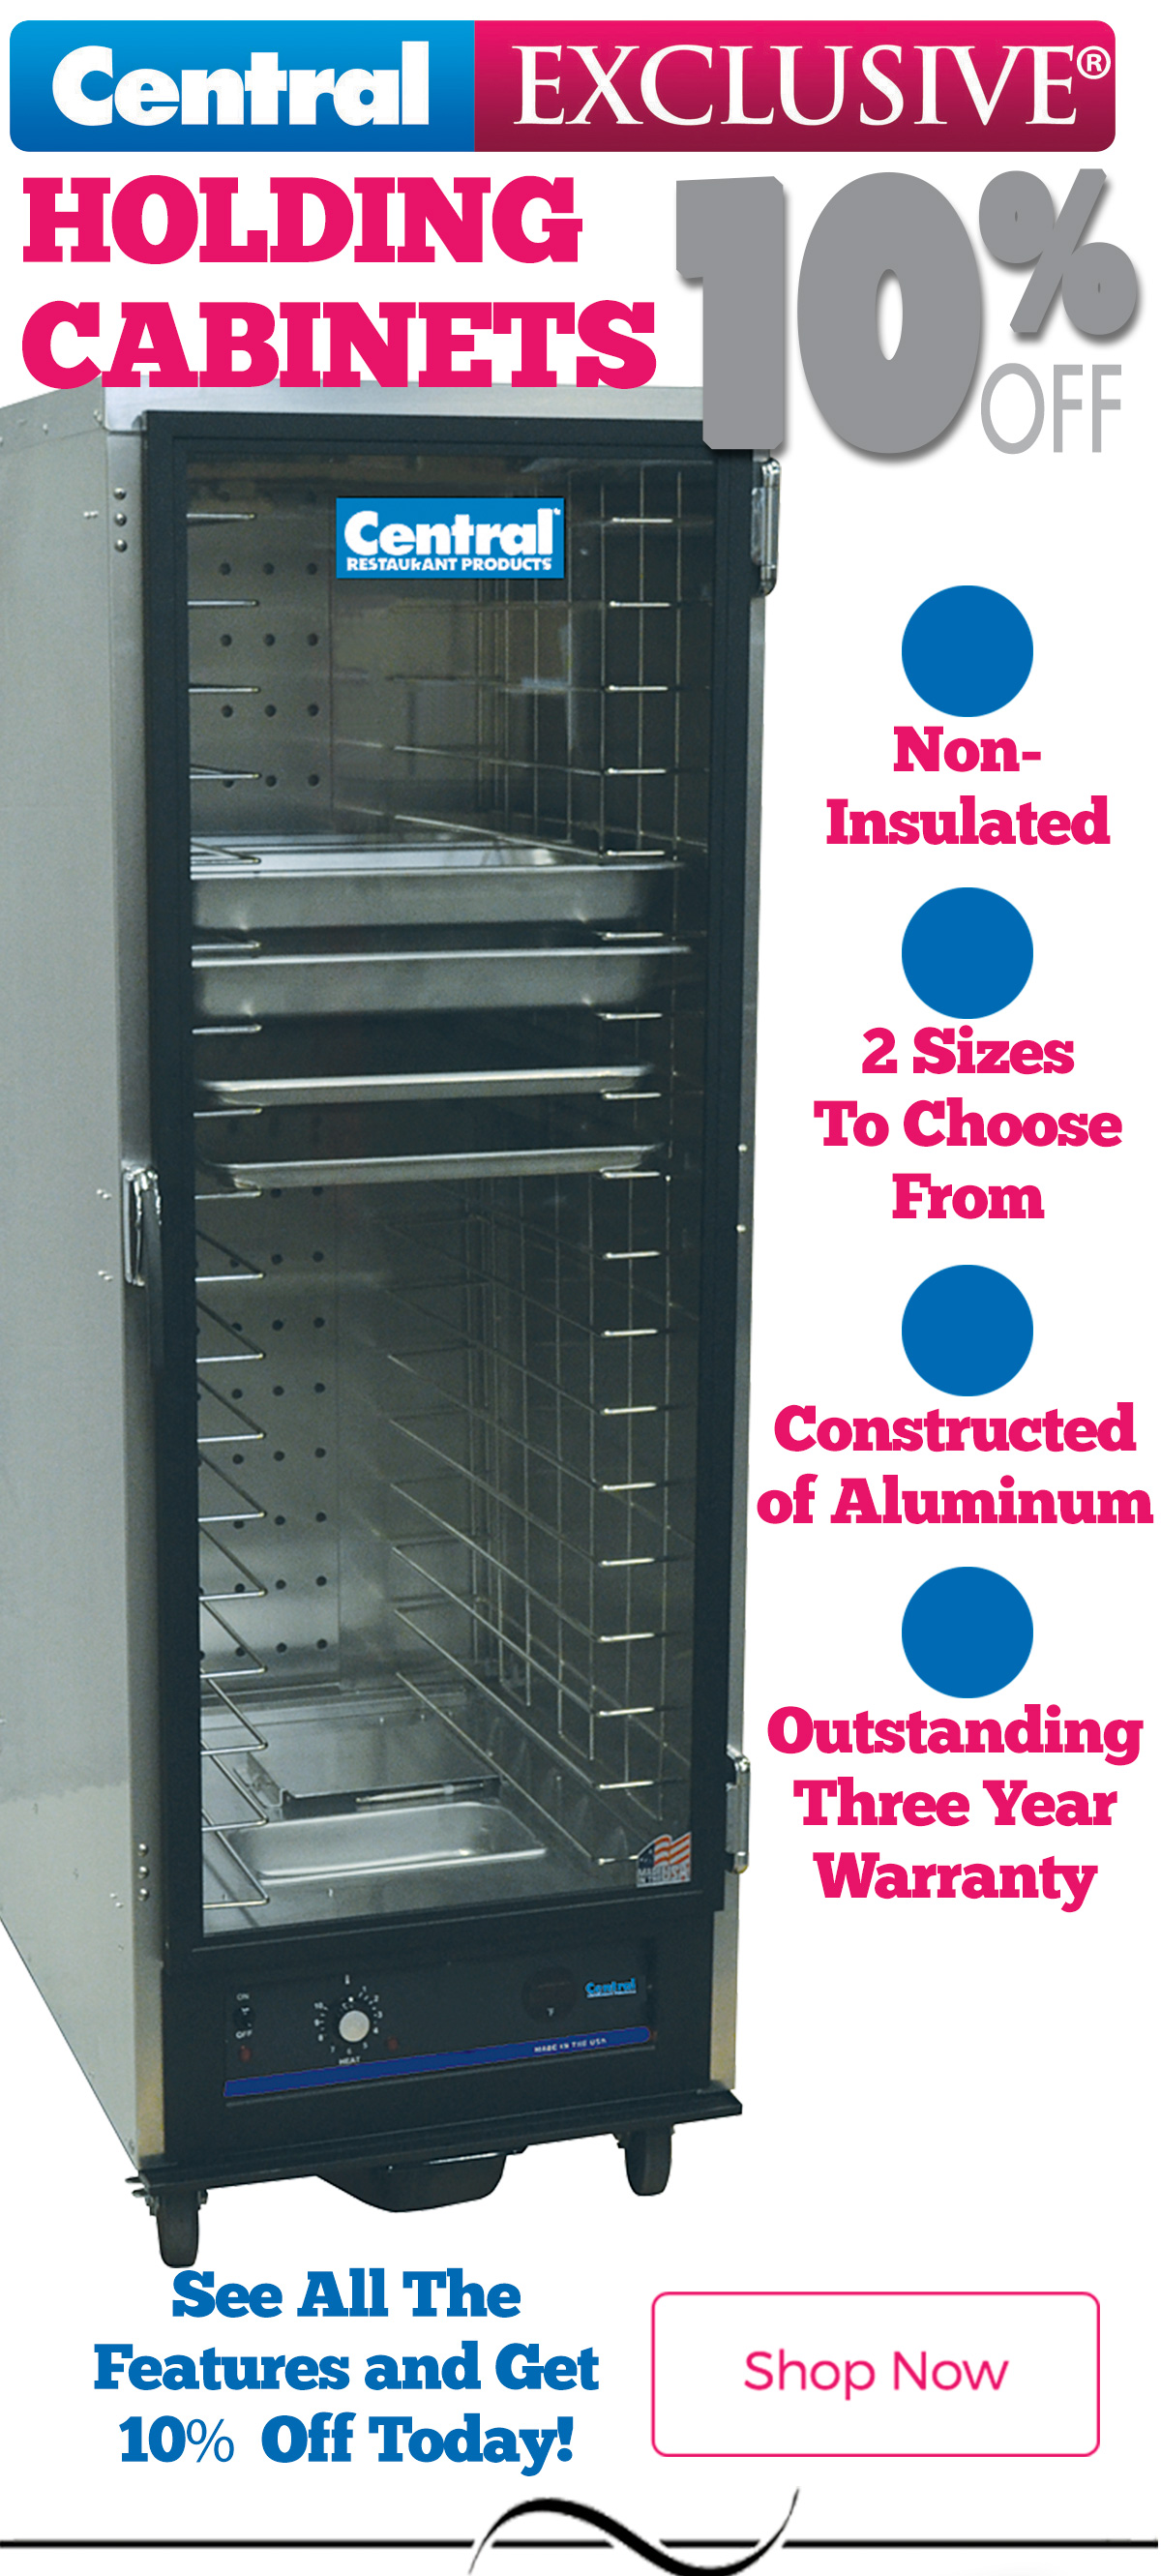 Get Exclusive Holding Cabinets ONLY at Central and now 10% off thru February only!